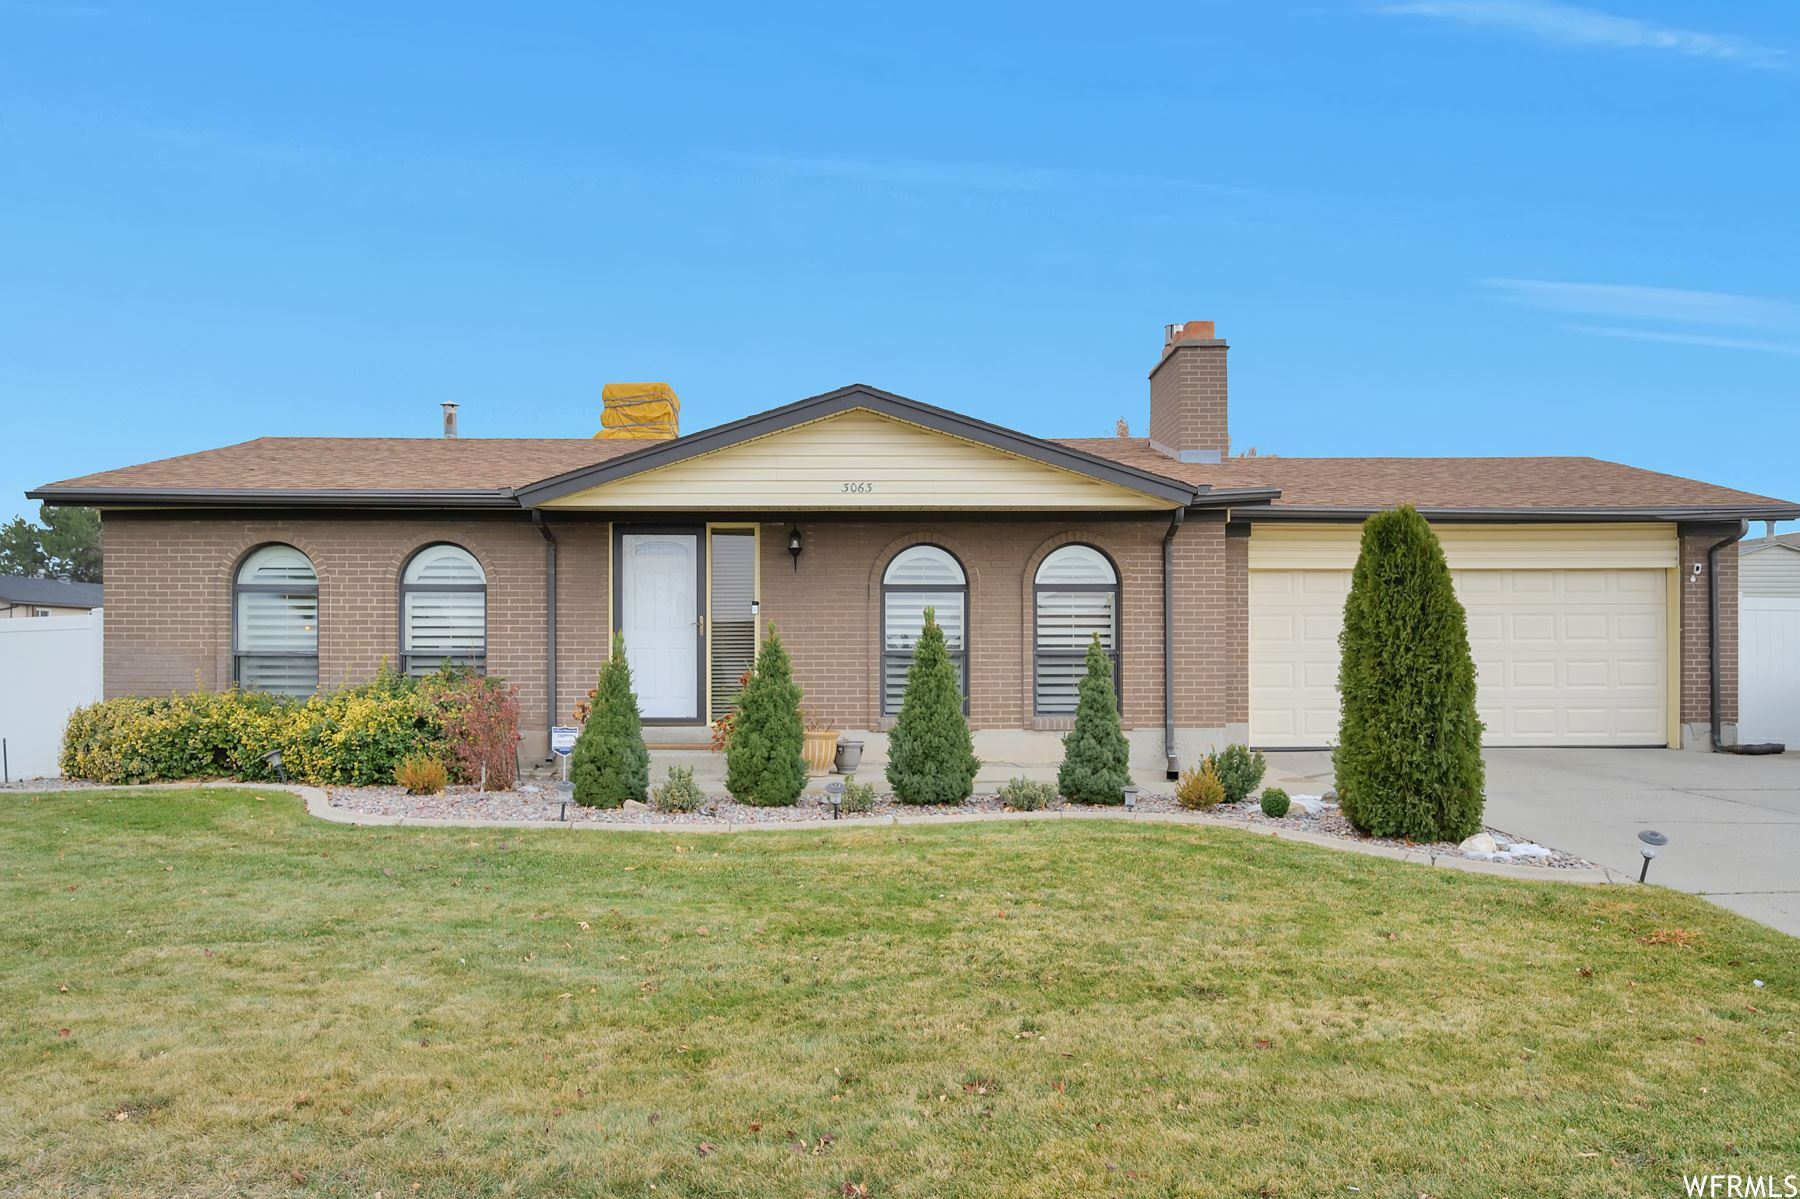 Photo of 3063 W WINCHESTER S DR, West Valley City, UT 84119 (MLS # 1719825)